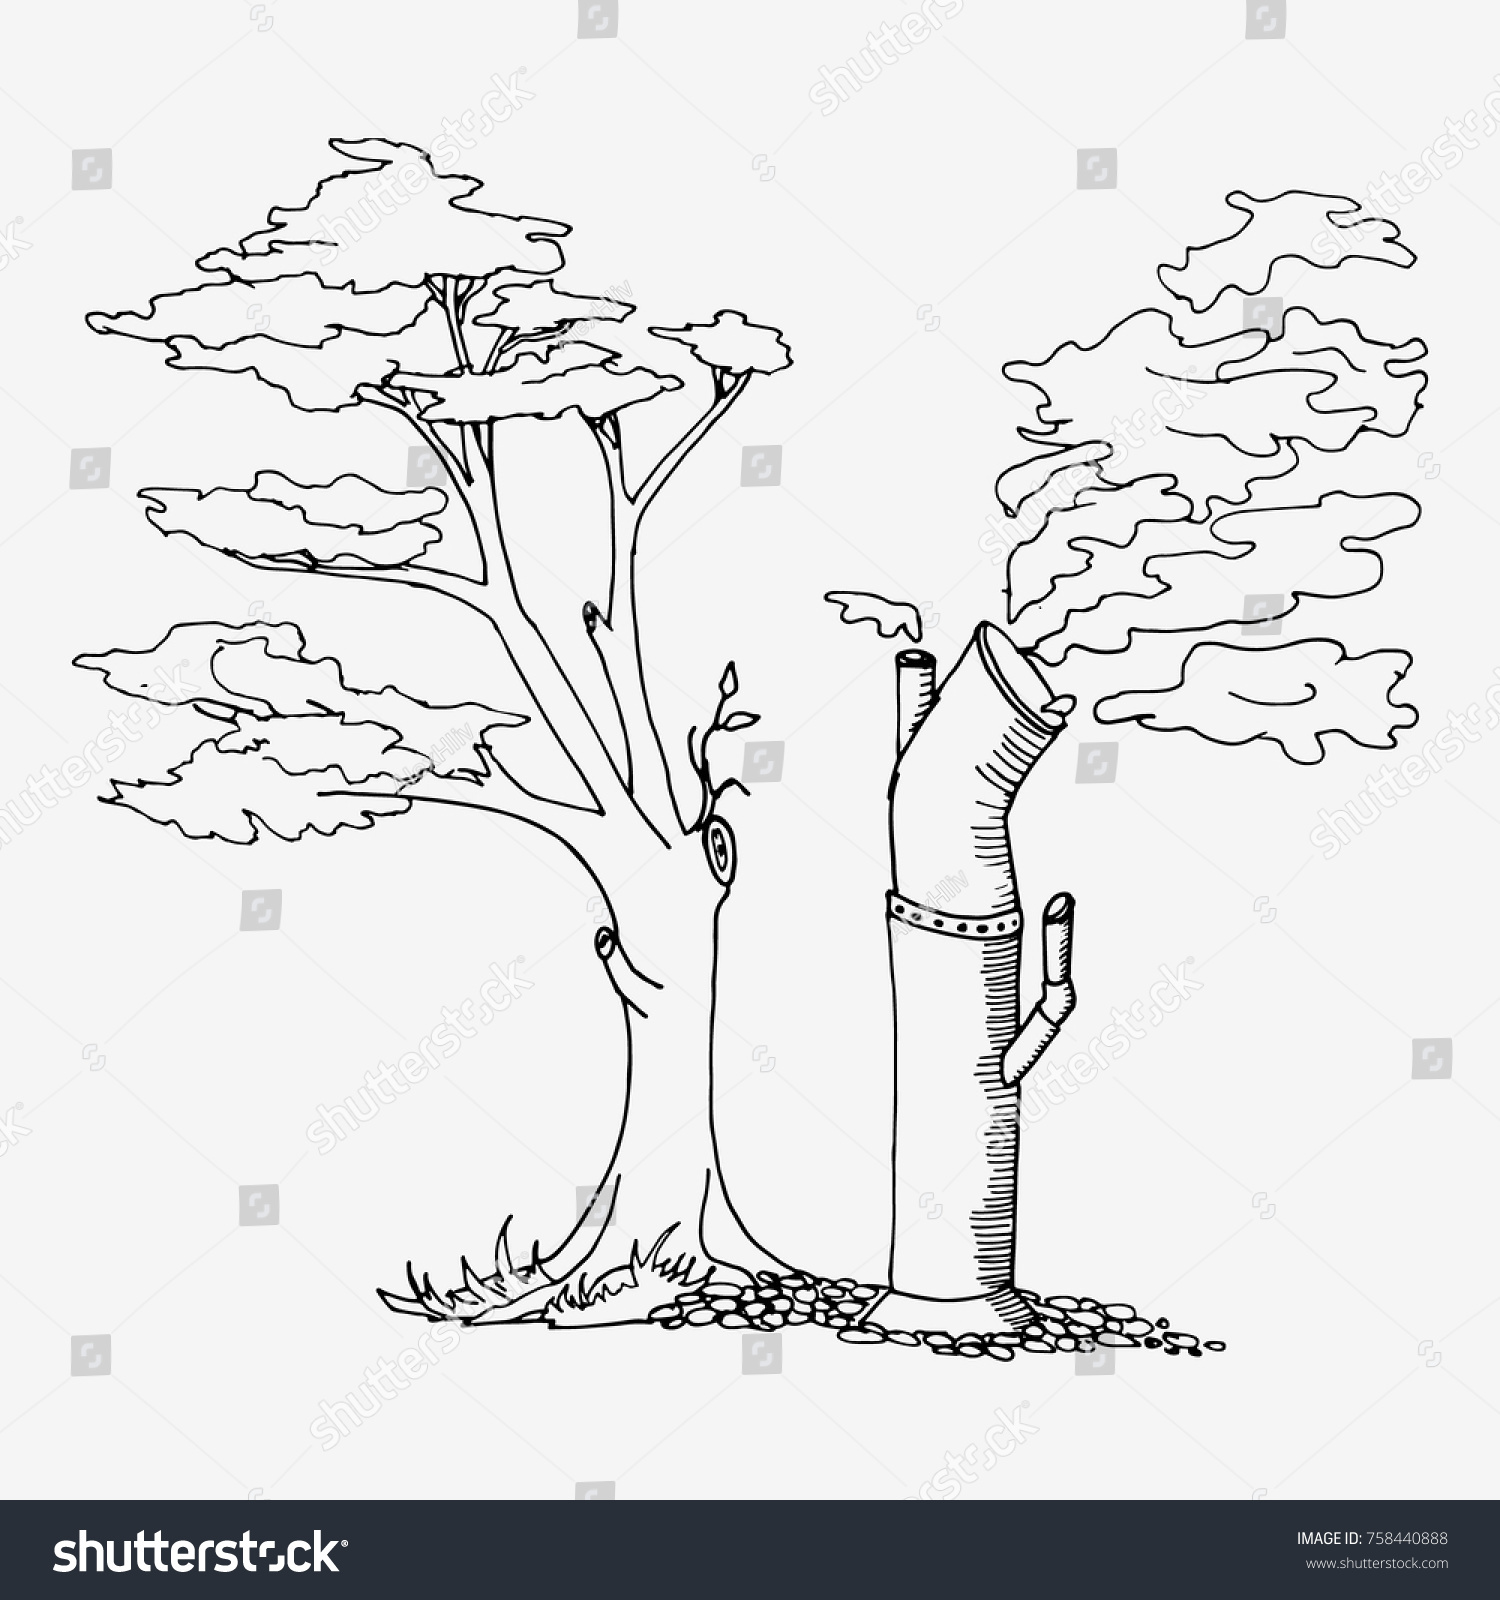 Environmental factory air pollution hand drawn sketch vector illustration black and white drawing